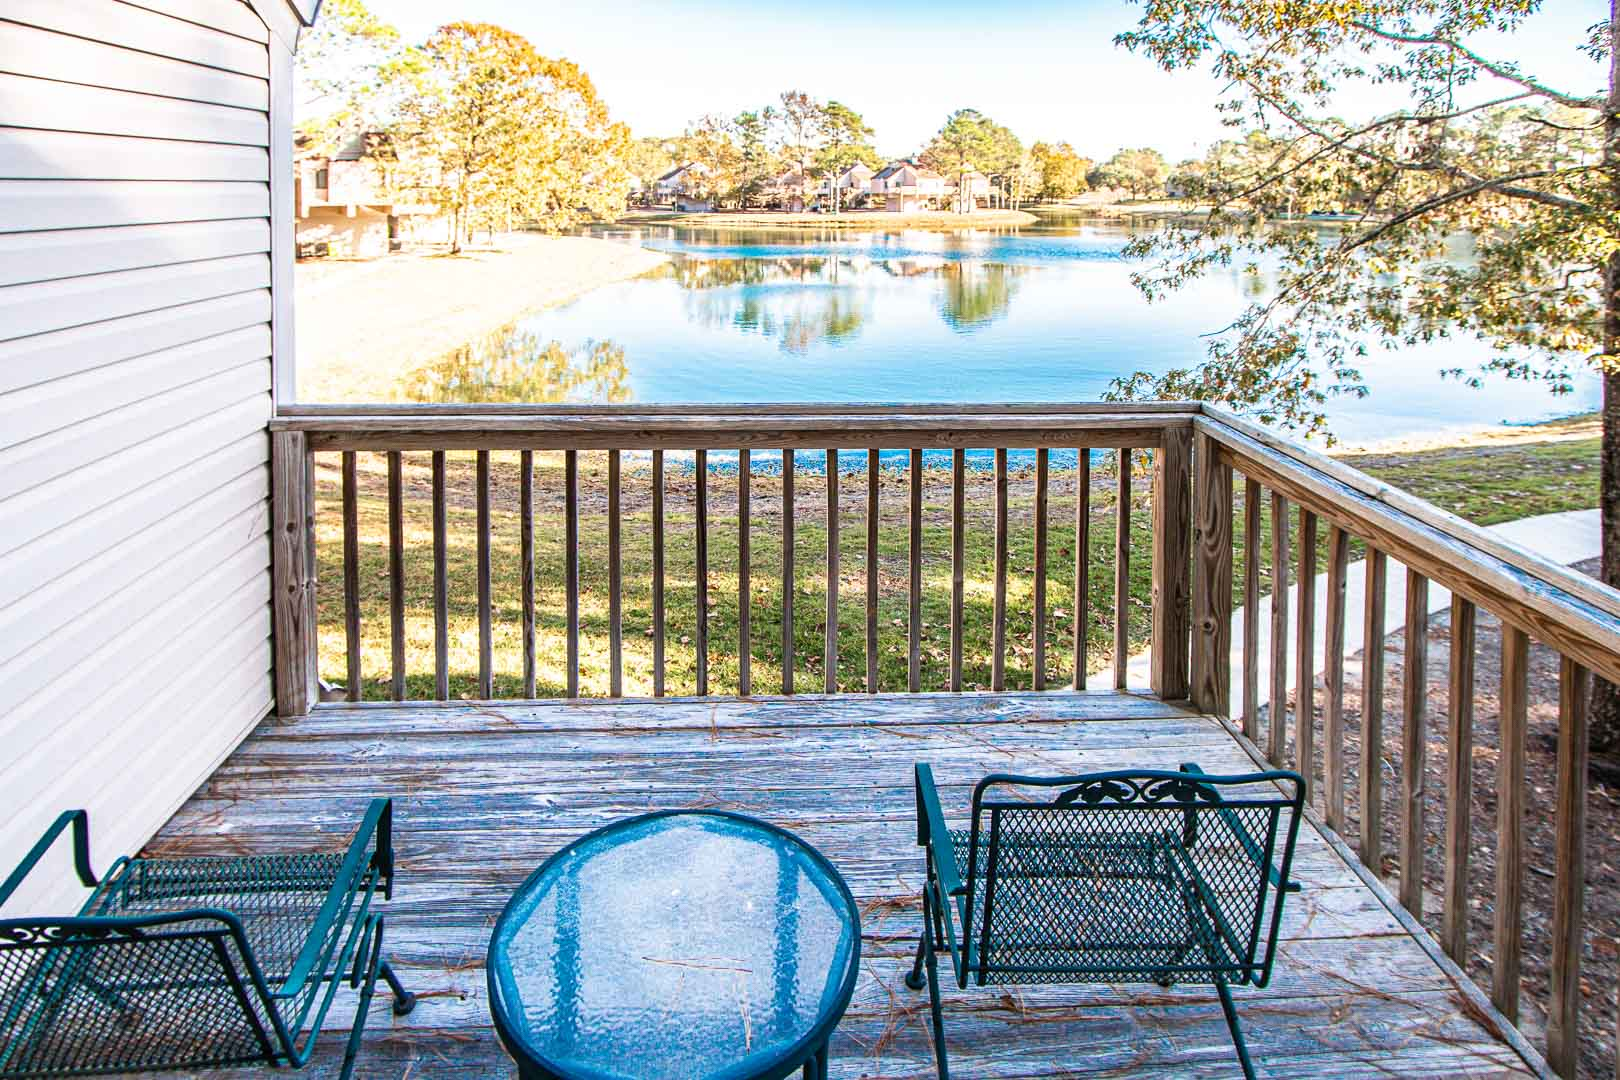 A peaceful balcony view at VRI's Waterwood Townhomes in New Bern, North Carolina.